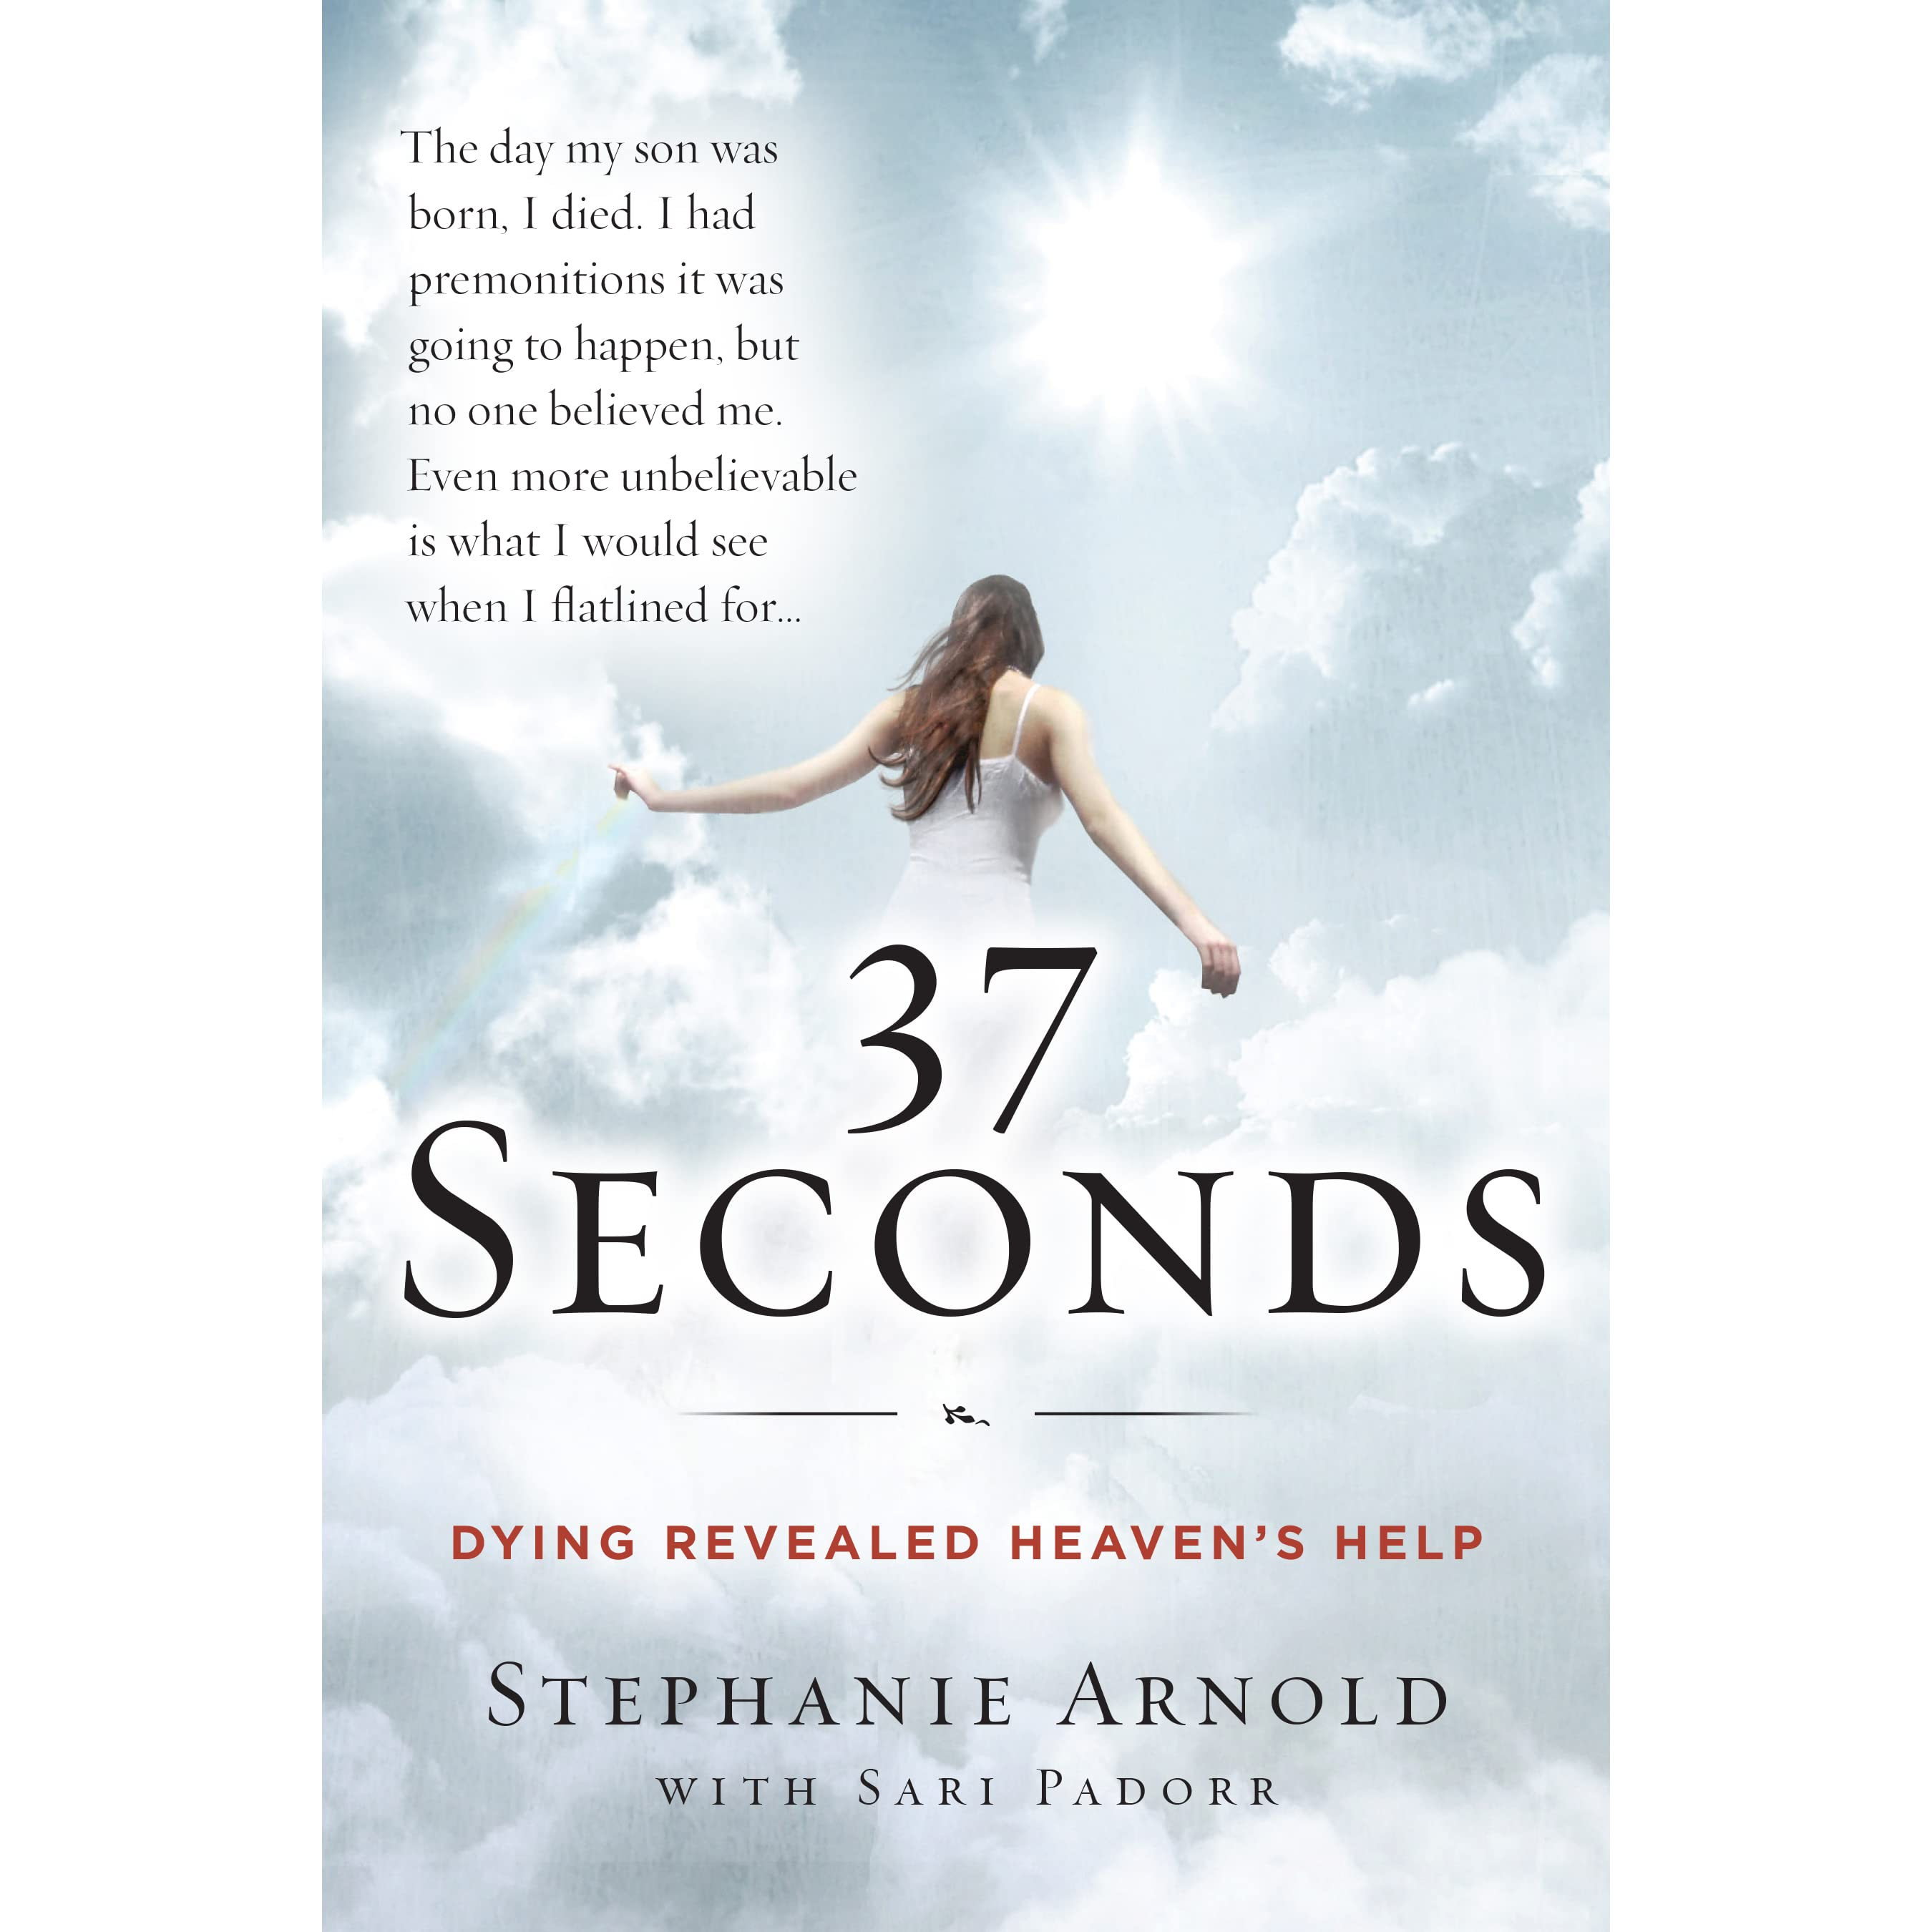 For One More Day Book Report  37 Seconds Dying Revealed Heaven S Help A  Mother S Journey By 37 Seconds Dying Revealed Heaven S Help A Mother S  Journey By